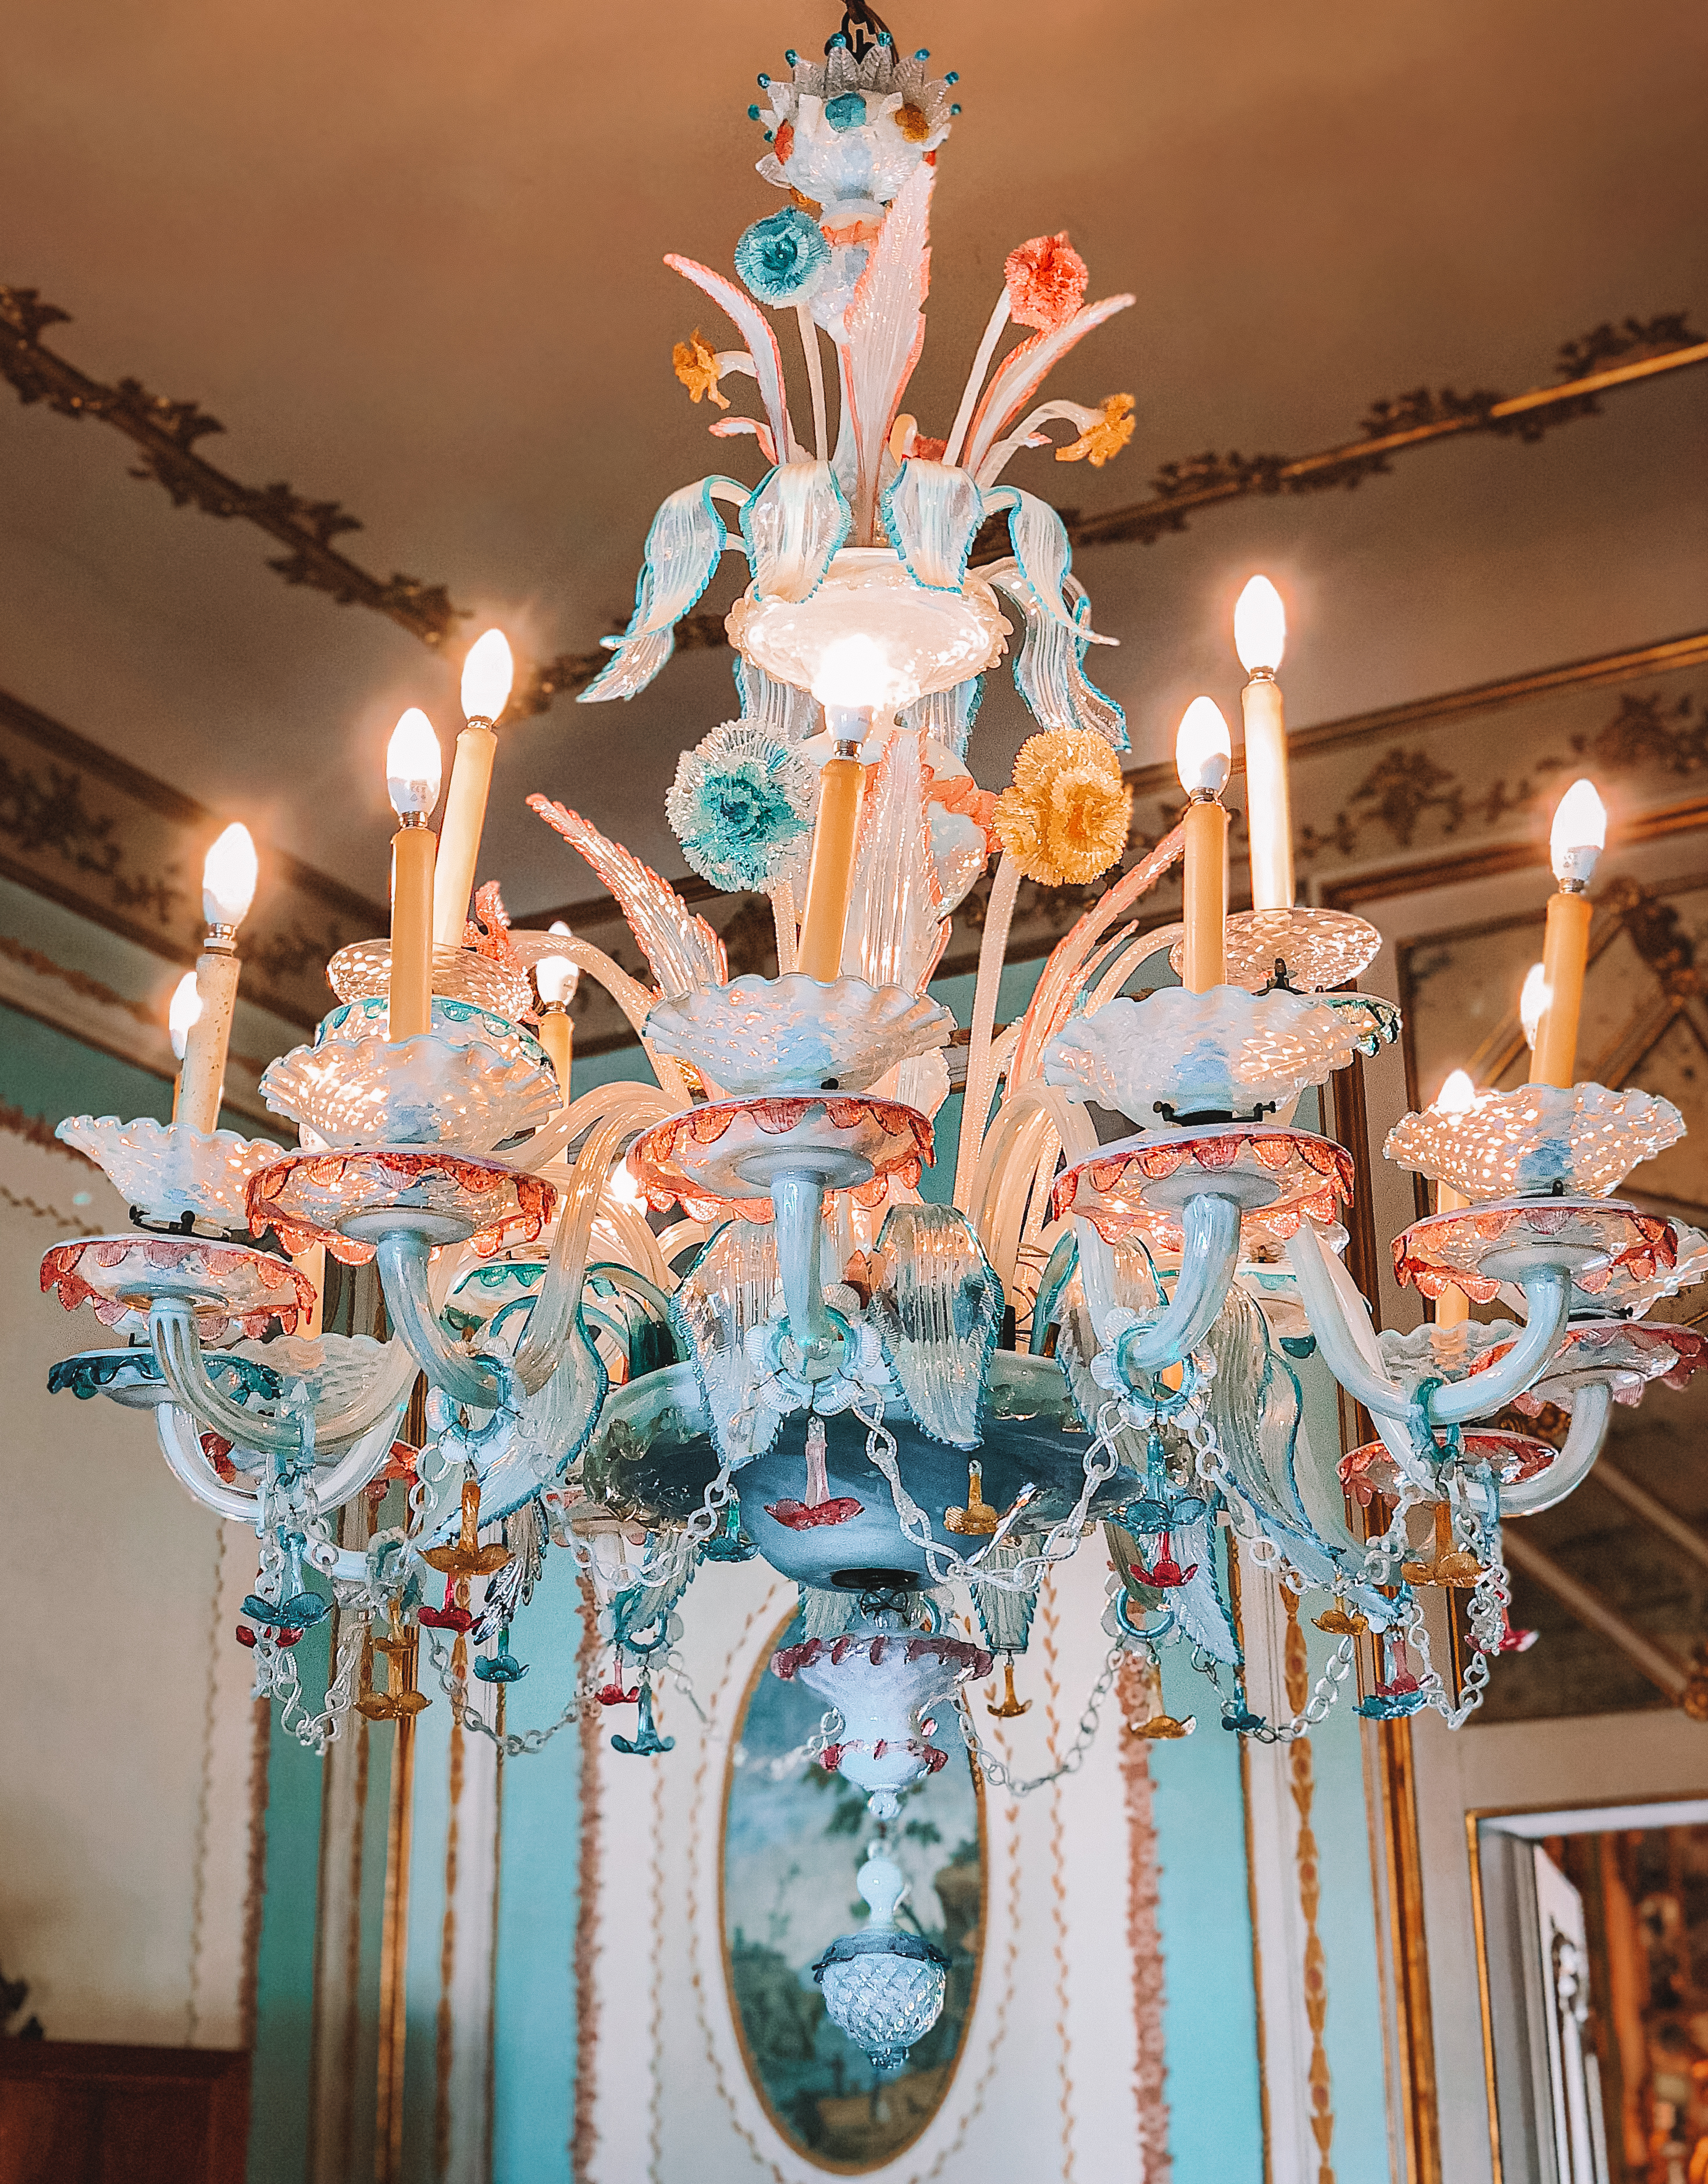 Muslim-travel-guide-Sintra-Portugal-Palace-of-Queluz-chandelier